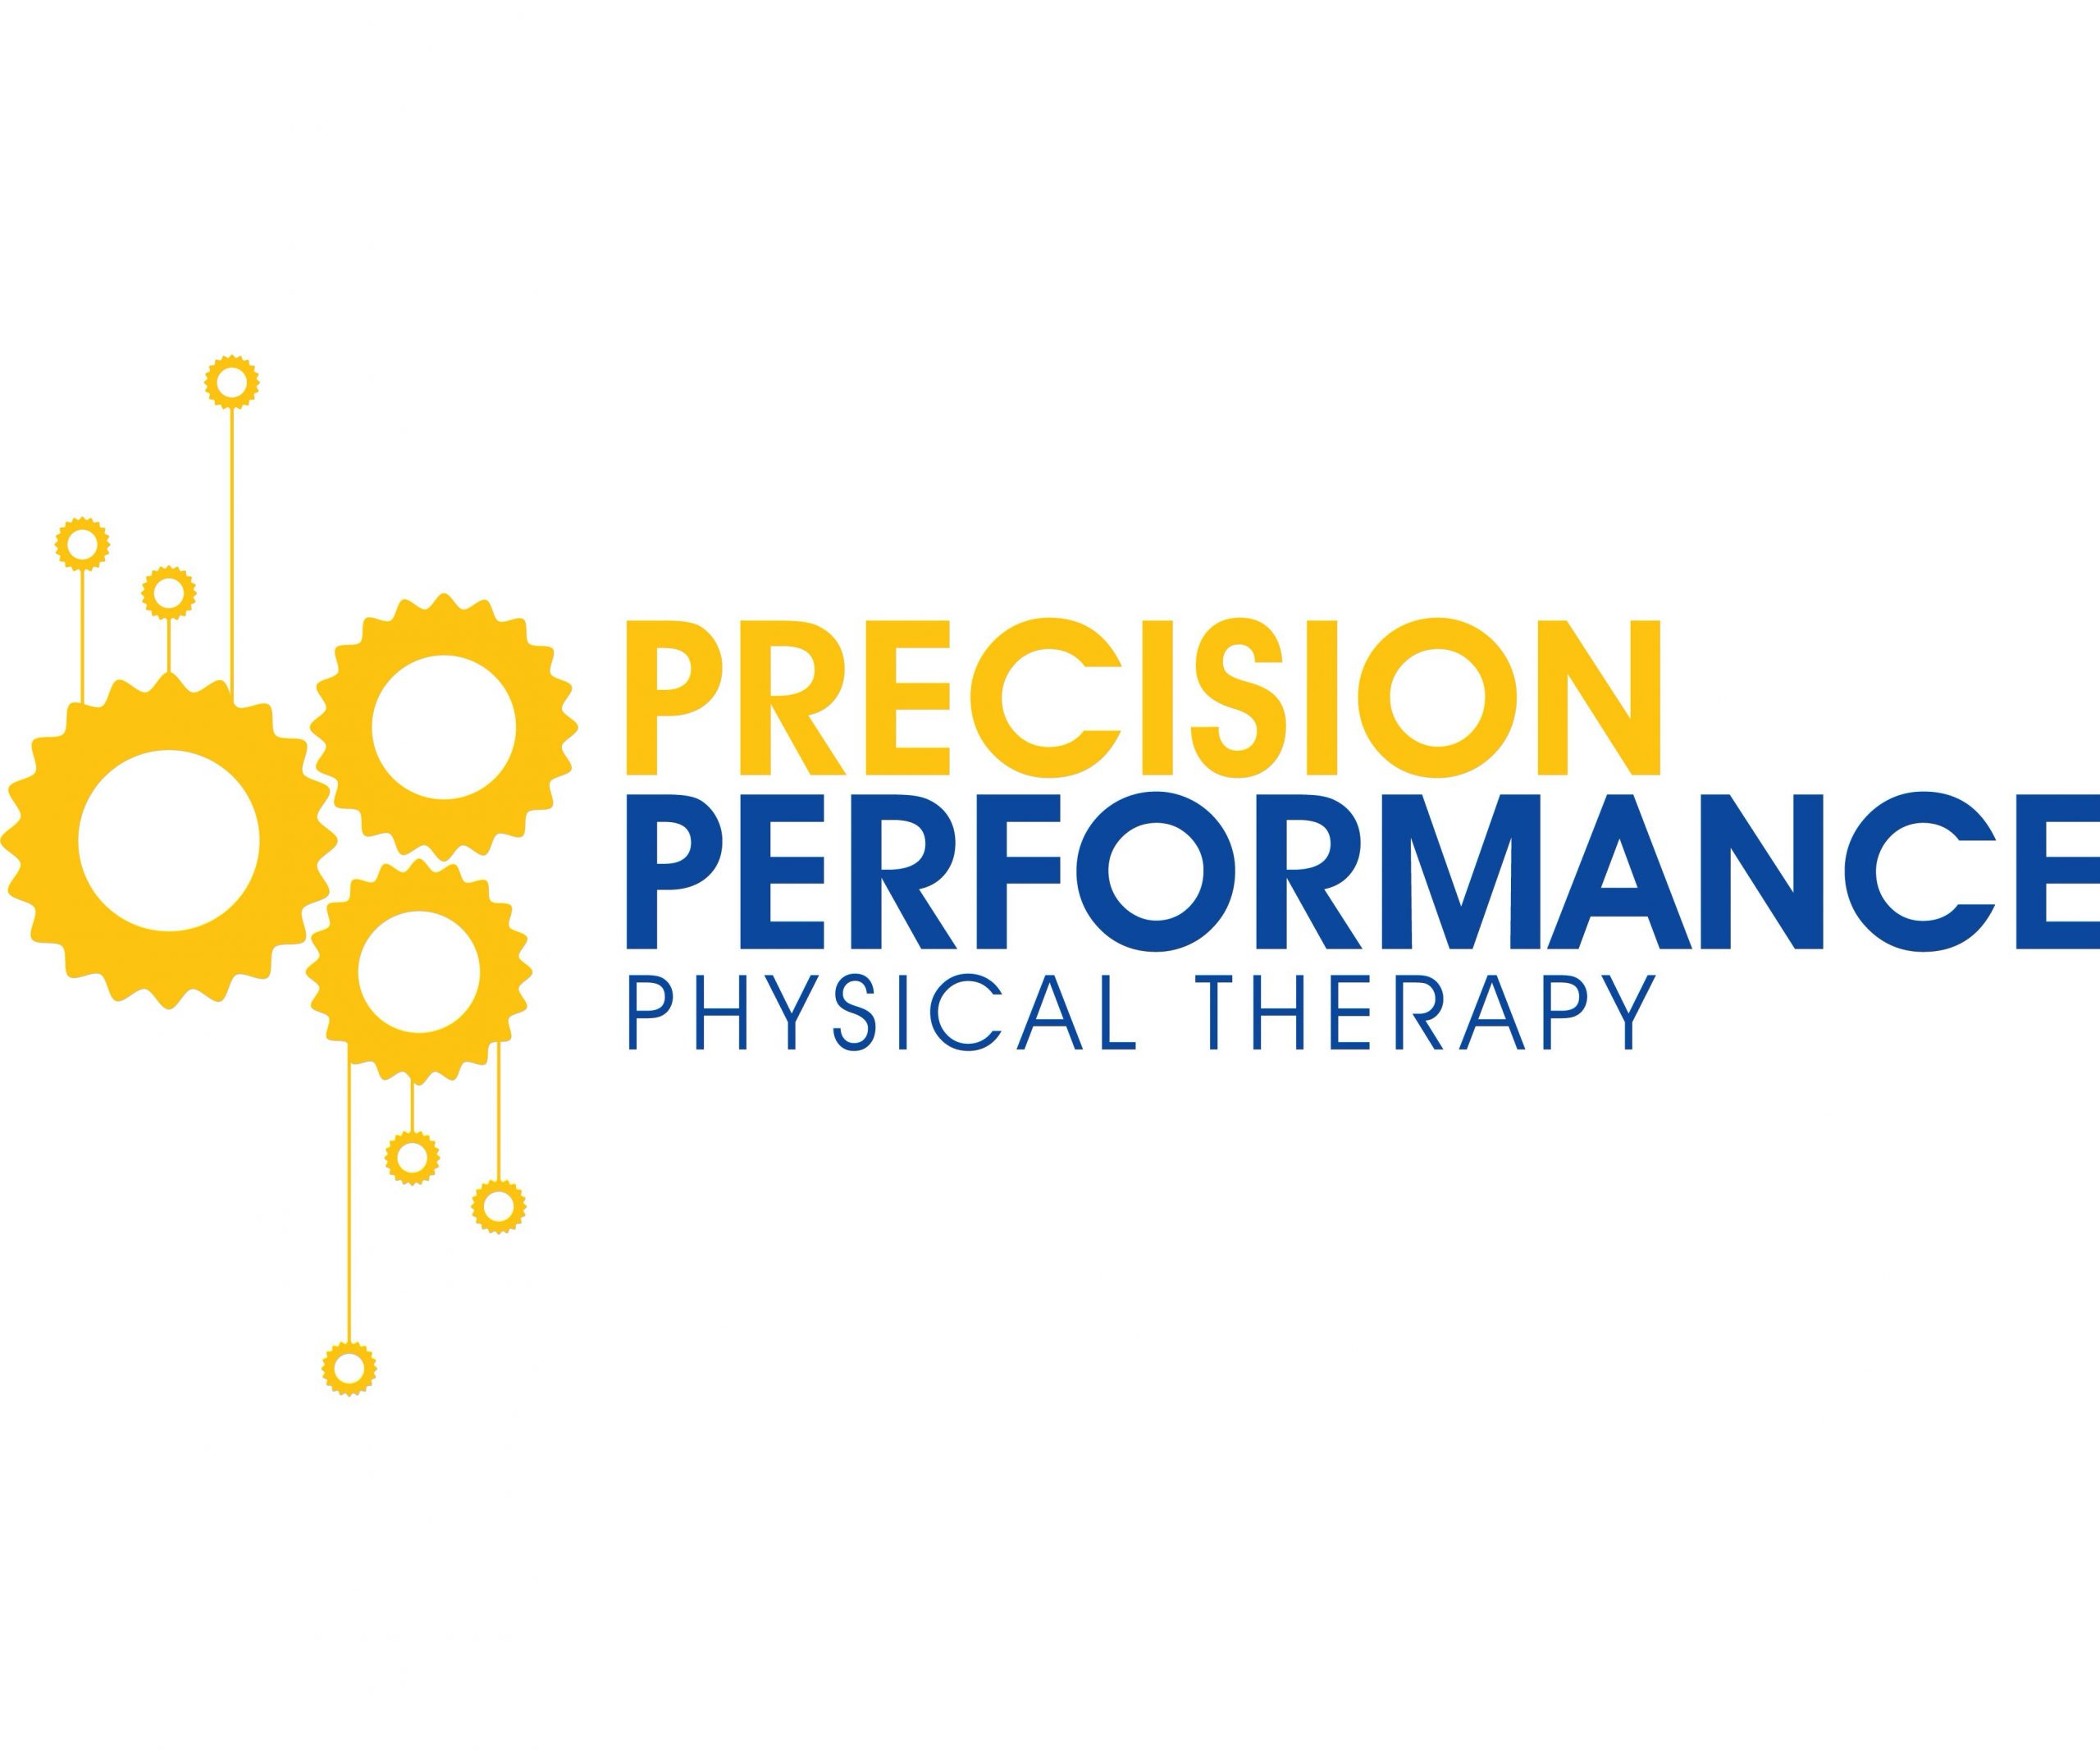 MEND partners with Dr. Herting of Precision Performance Physical Therapy